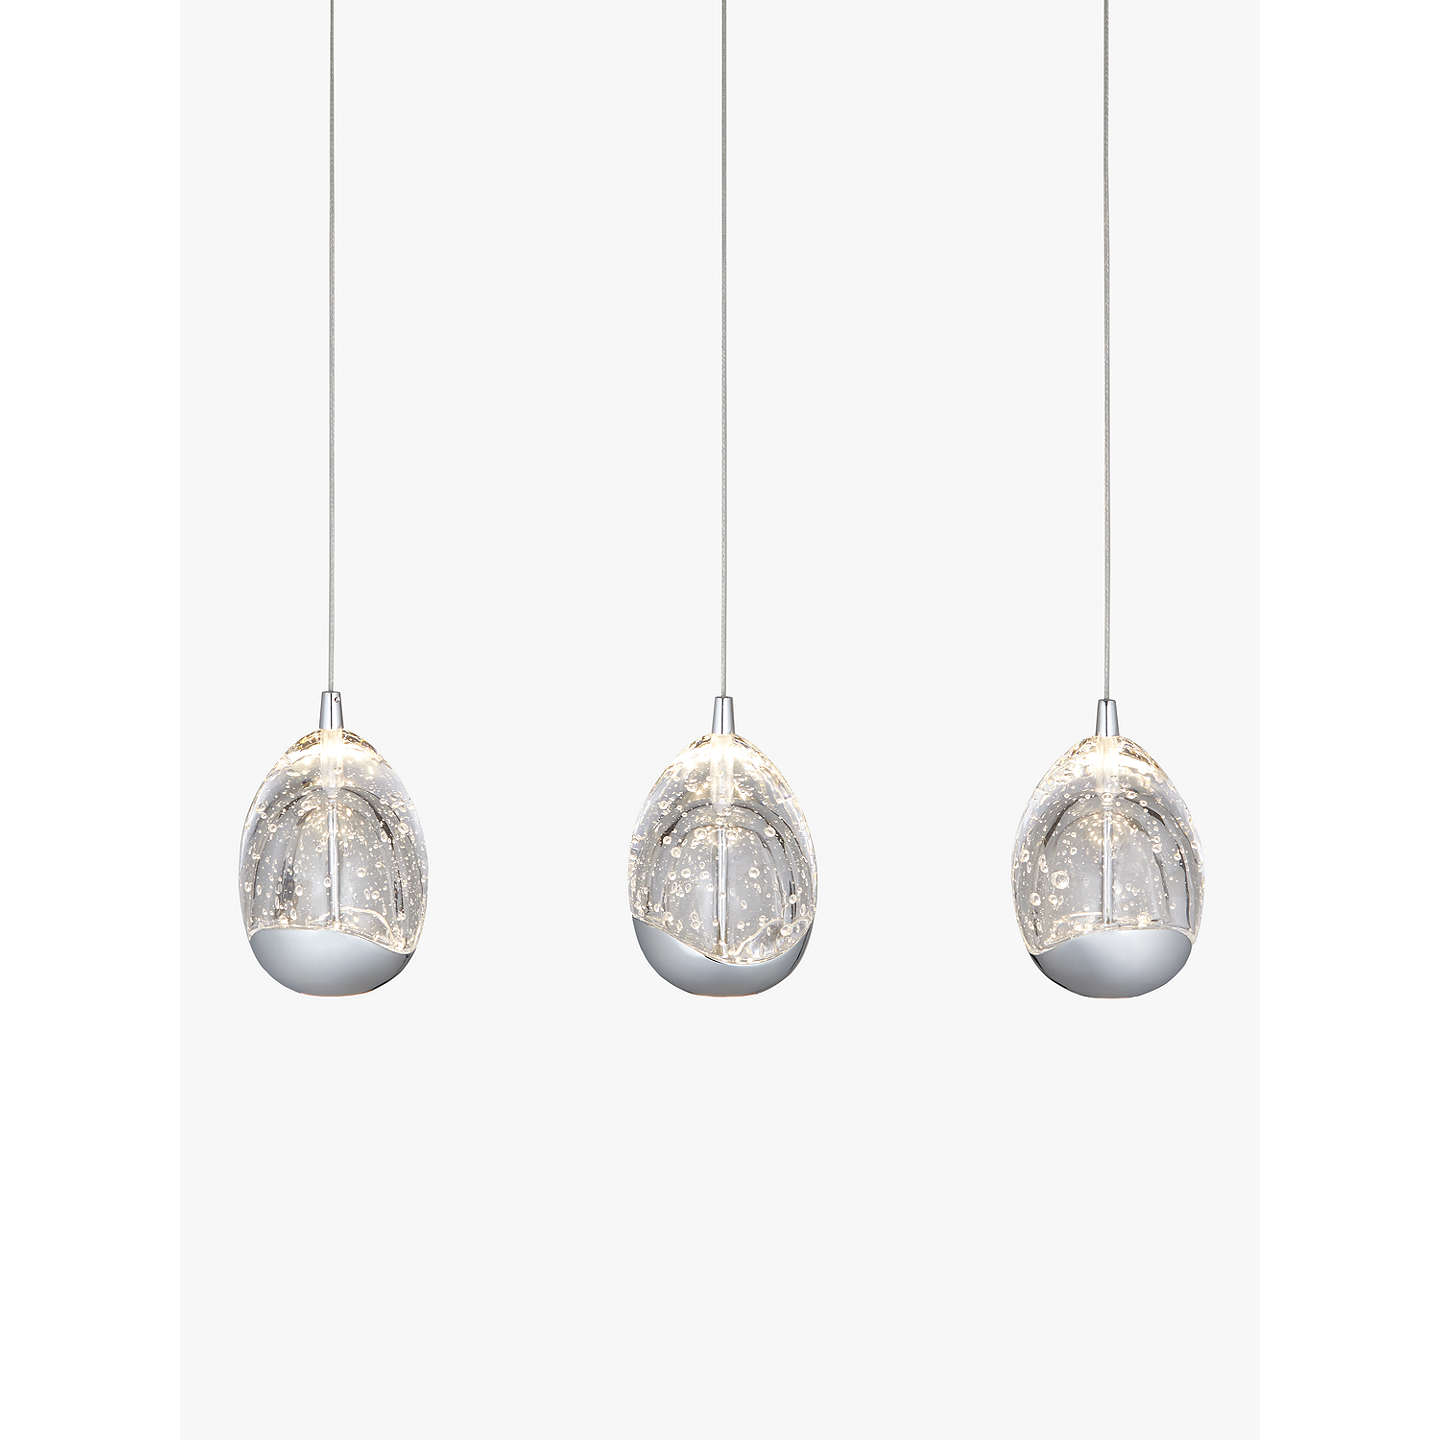 John lewis droplet 3 pendant led diner ceiling light chrome at john buyjohn lewis droplet led 3 pendant ceiling light chrome online at johnlewis mozeypictures Image collections